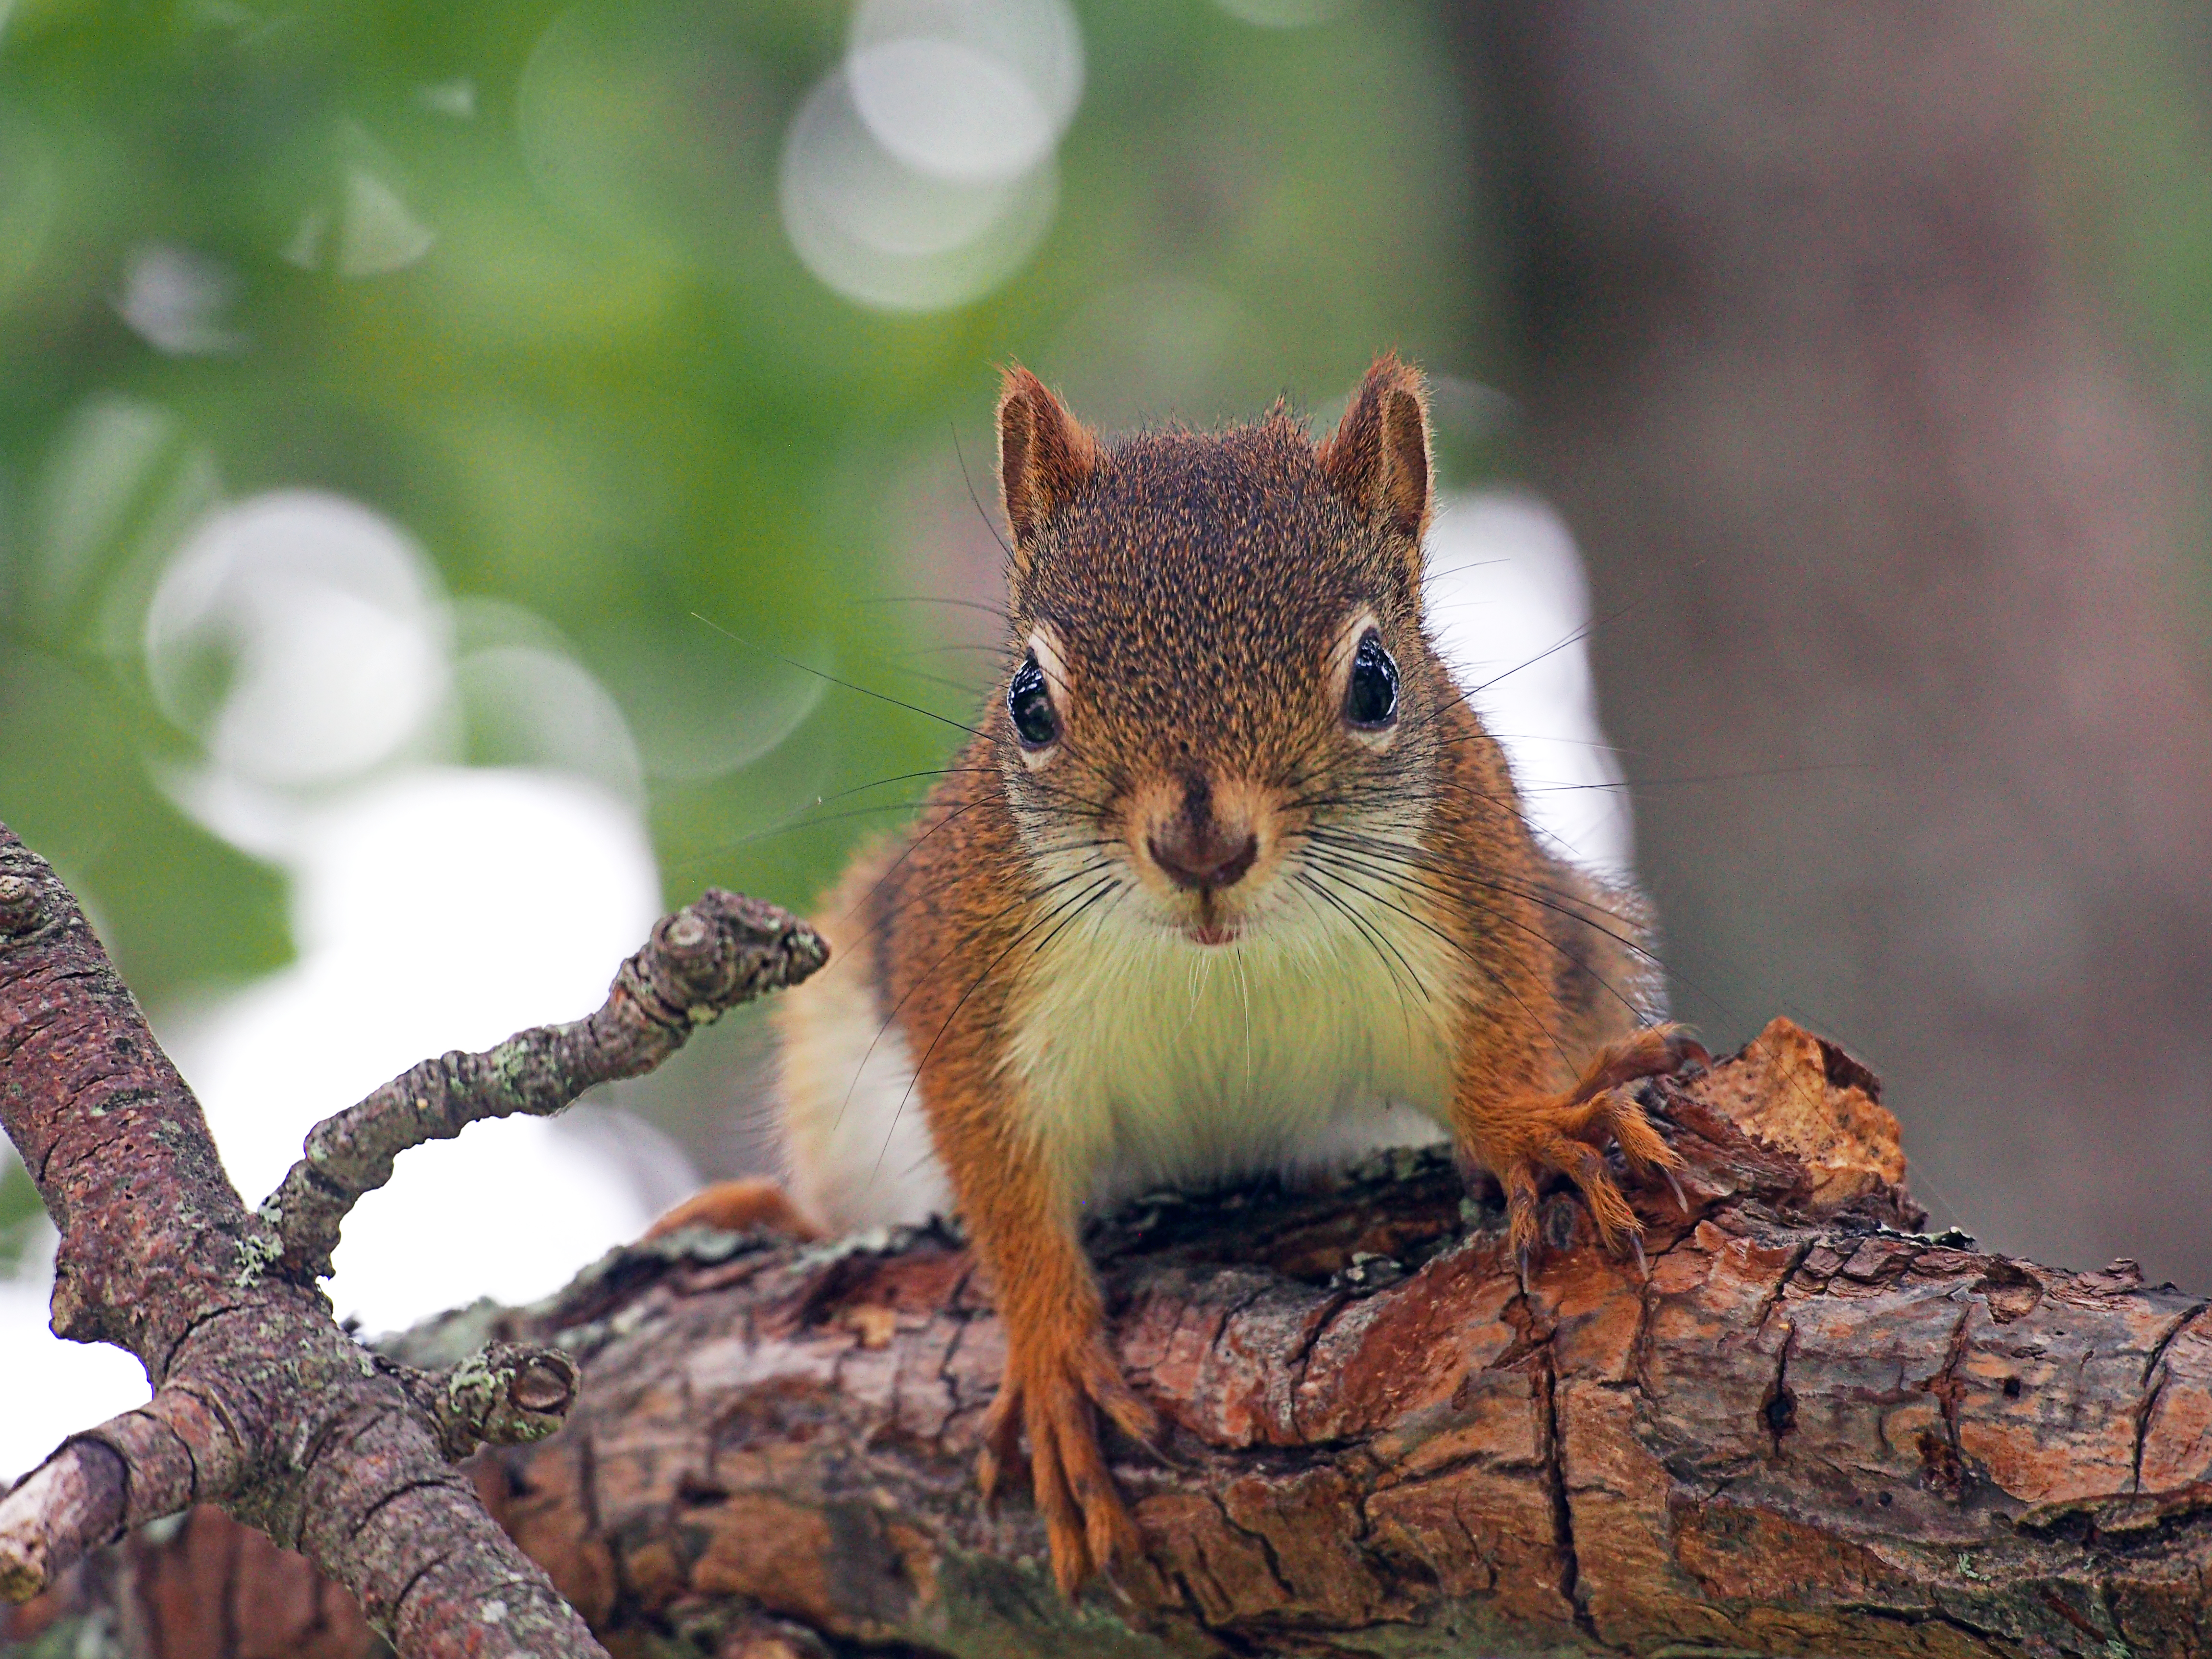 Red squirrel with attitude